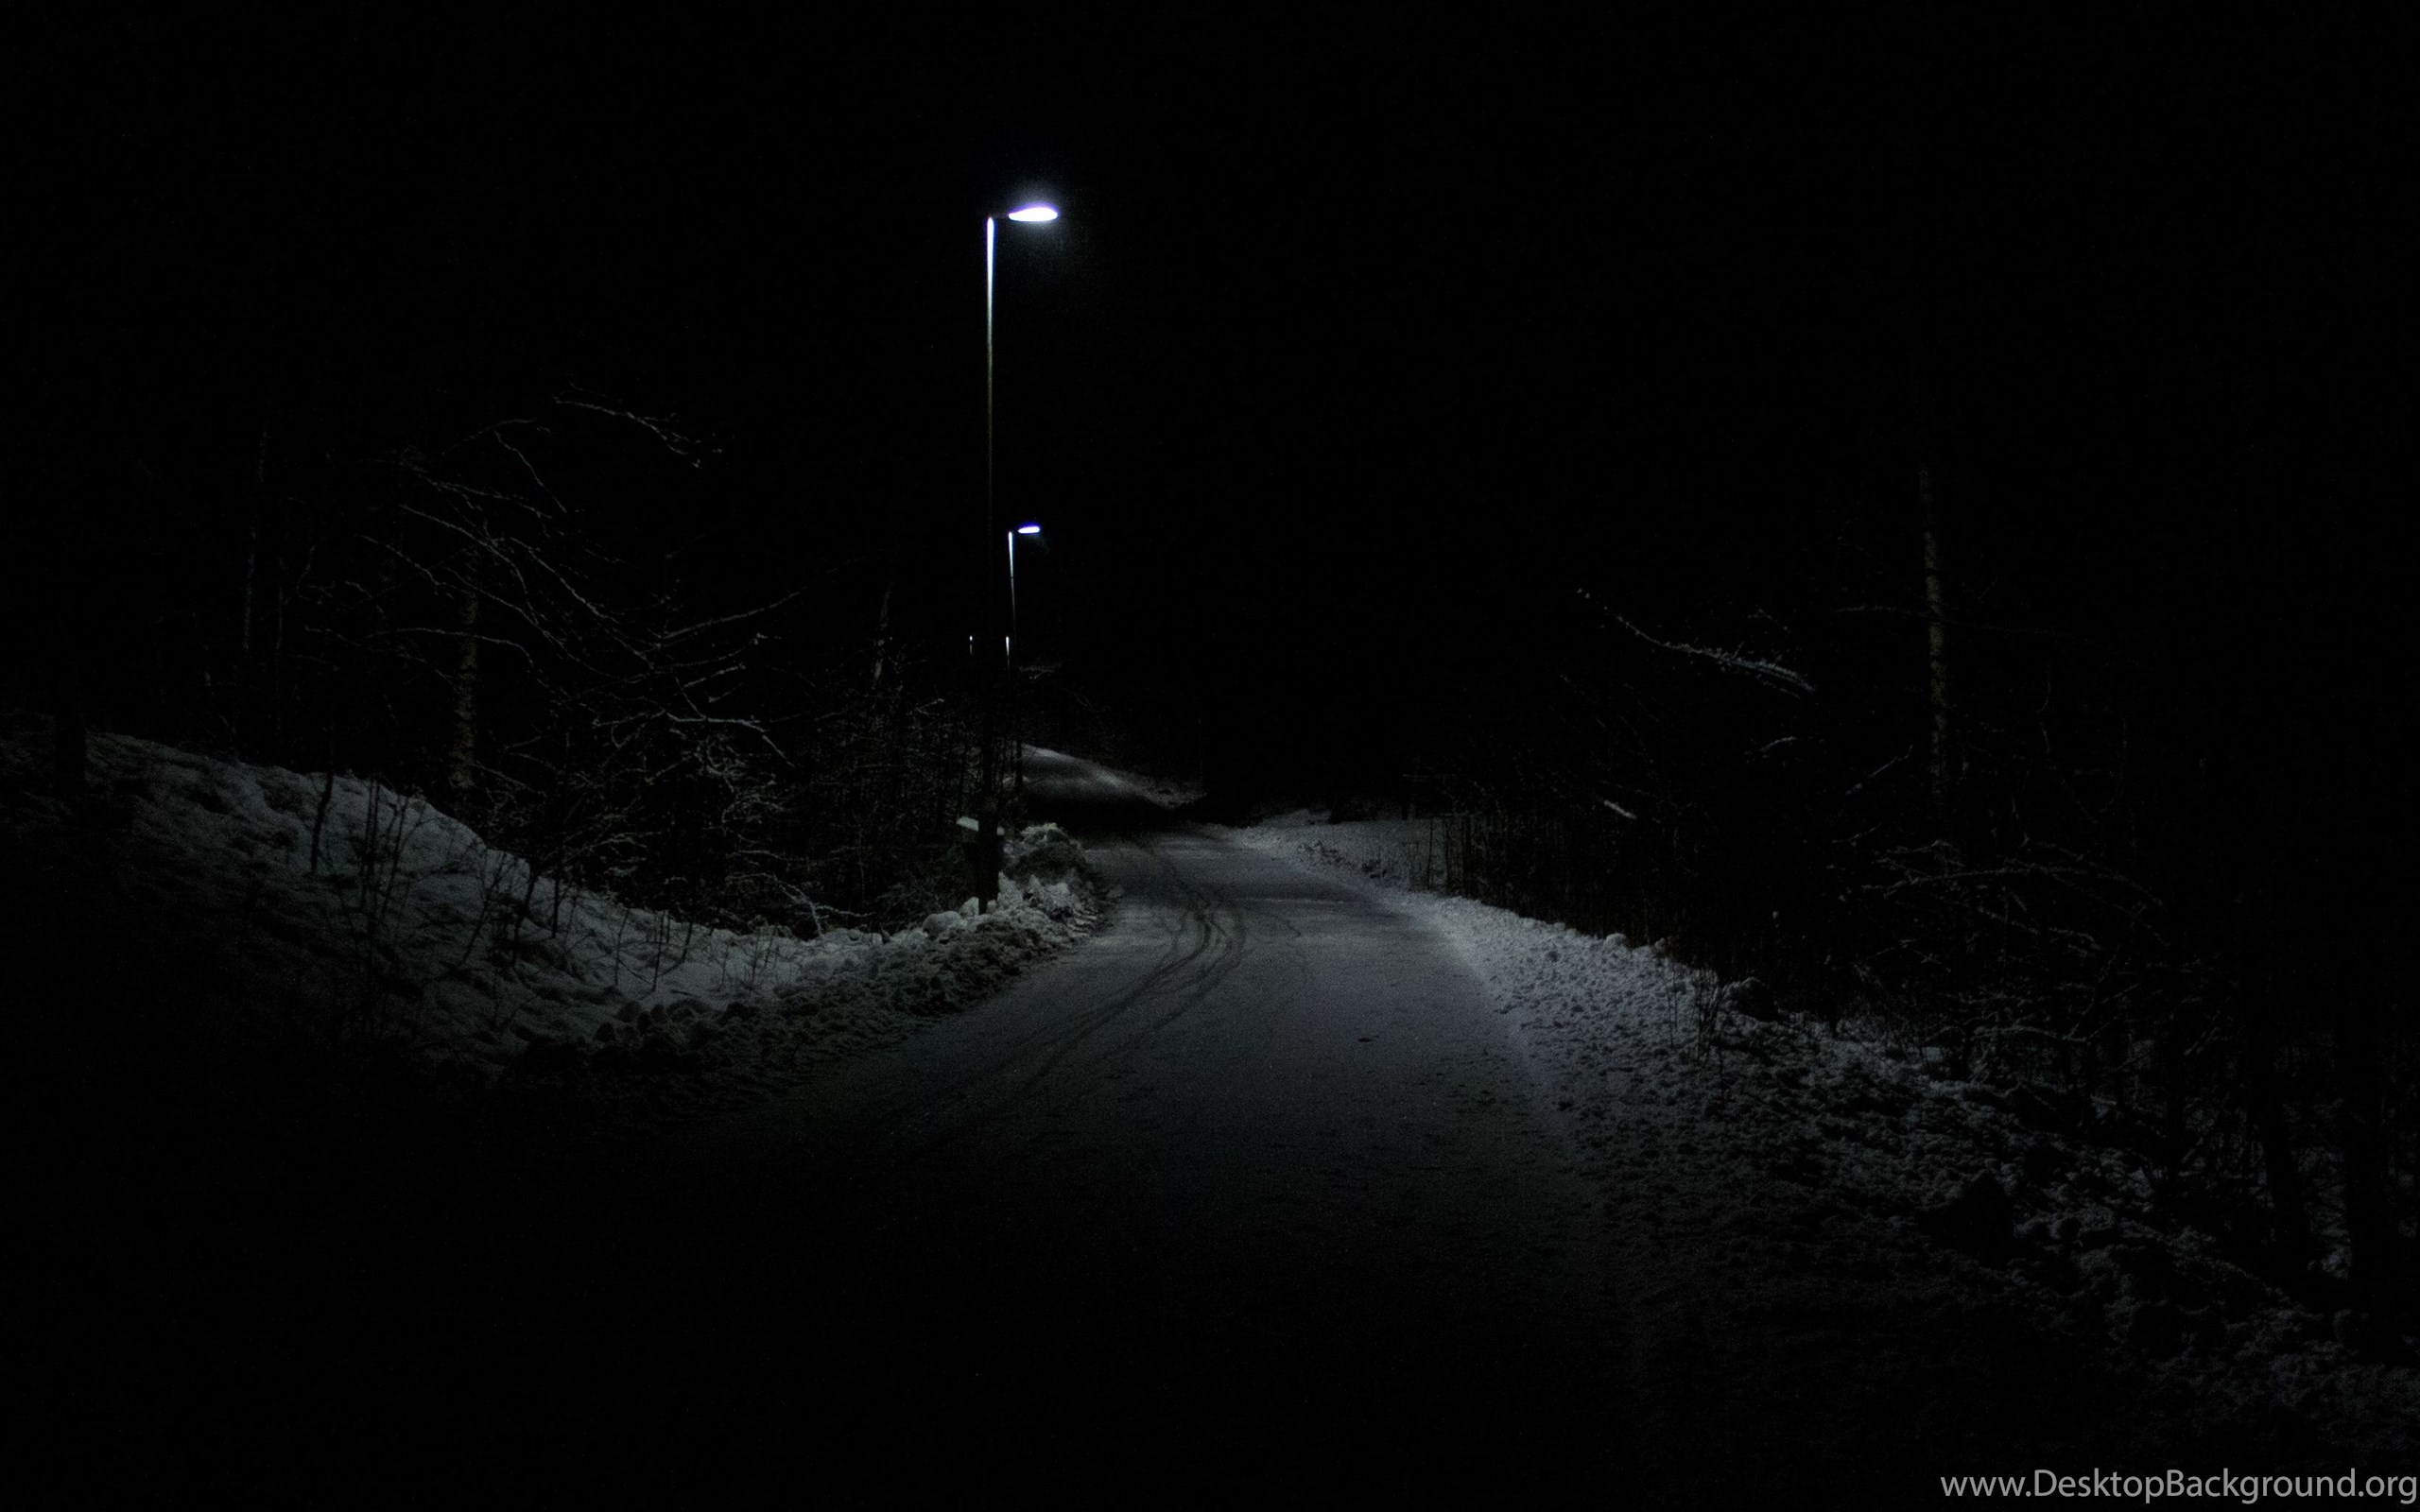 Dark Road Nature Hd Wallpapers ImgMob Desktop Background